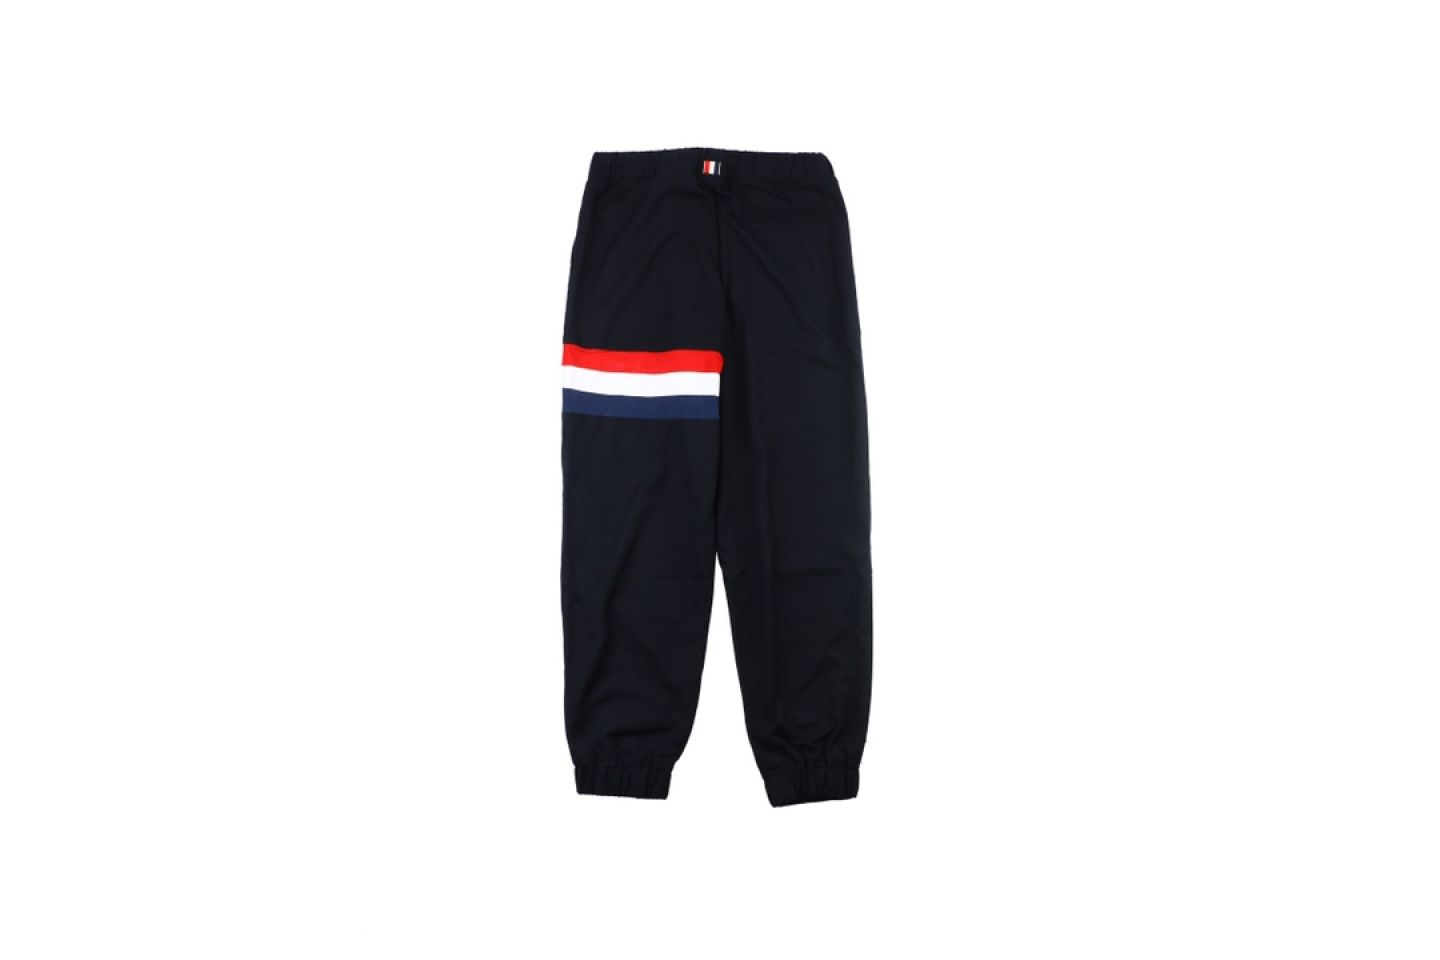 "Pants Thom browen 20fw sports sweatpants ""Navy Blue"" 5 5"